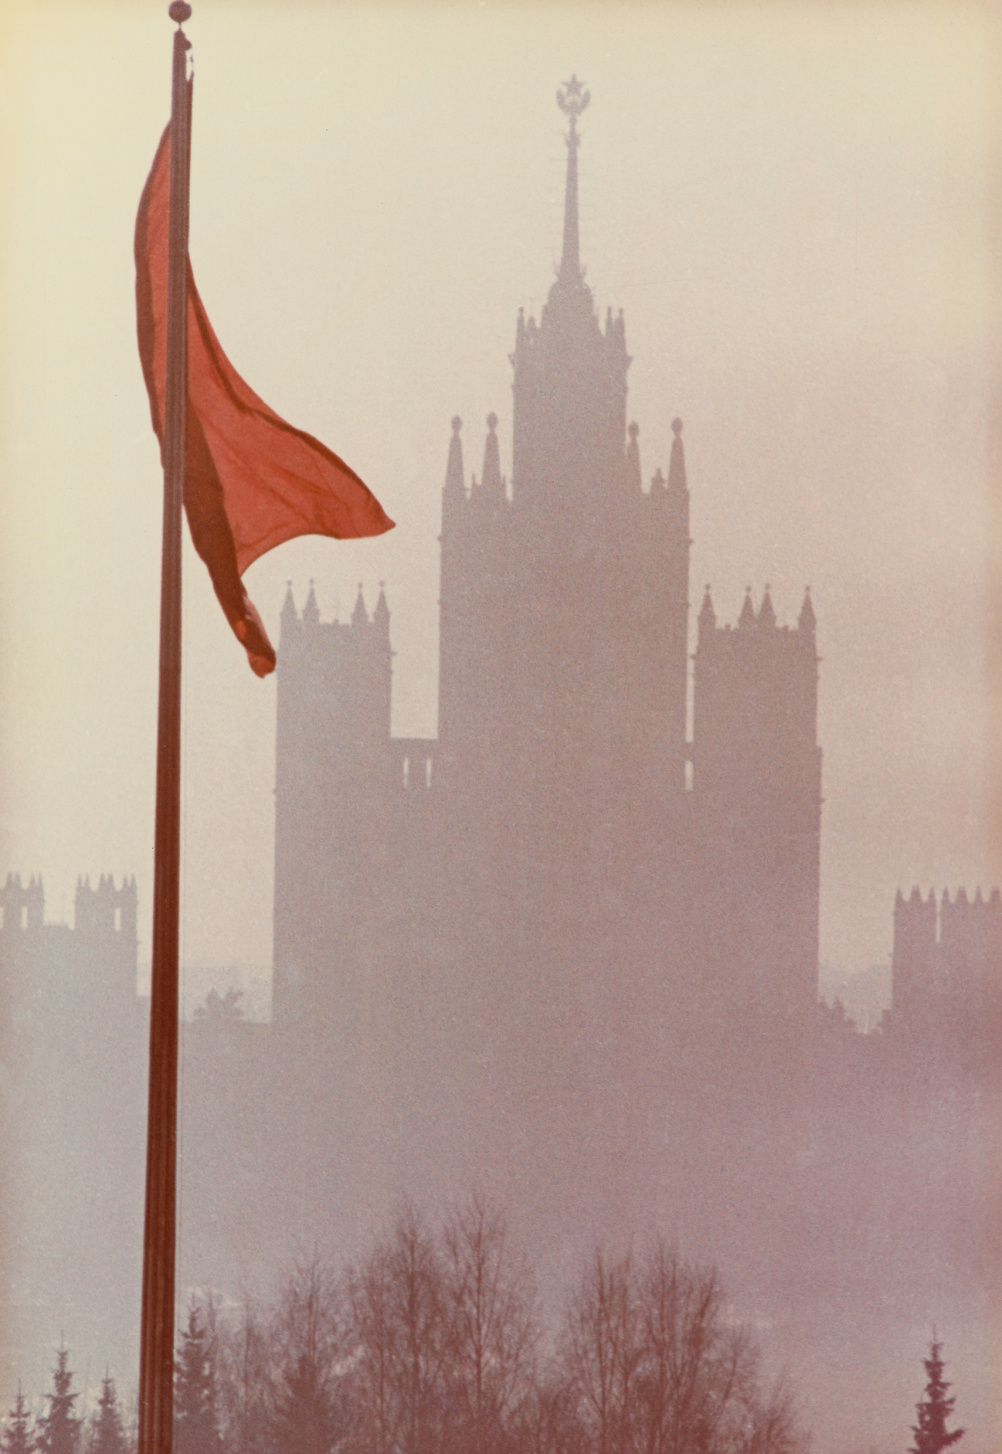 Dmitri Baltermants Untitled (Flag), 1960s